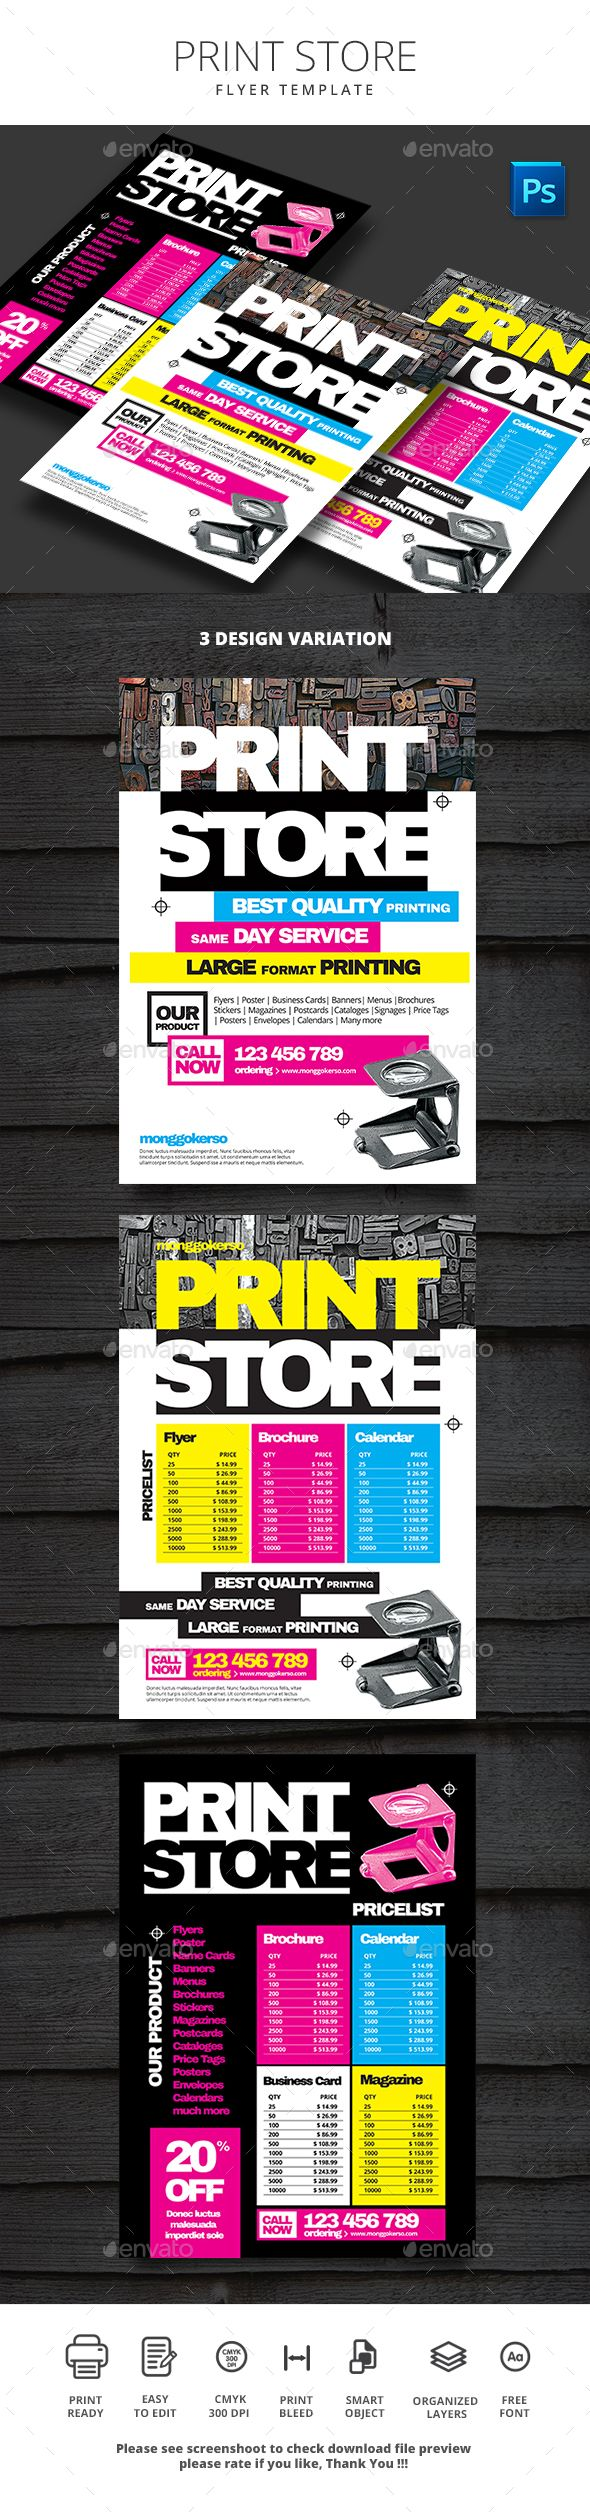 Print Store Flyer  — PSD Template #printer #corporate • Download ➝ https://graphicriver.net/item/print-store-flyer/18066389?ref=pxcr